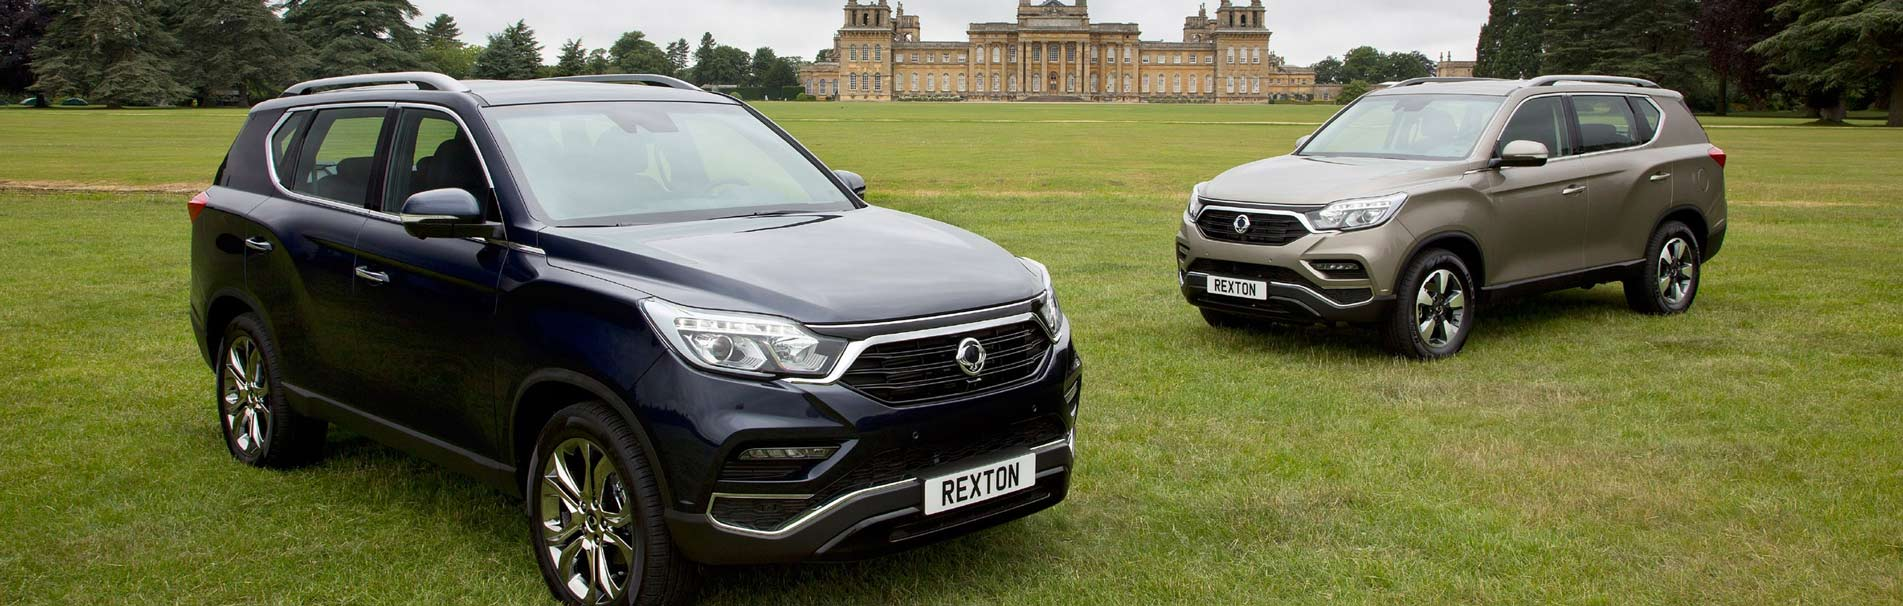 new-ssangyong-rexton-reviewed-by-uk-motoring-journalists-sl